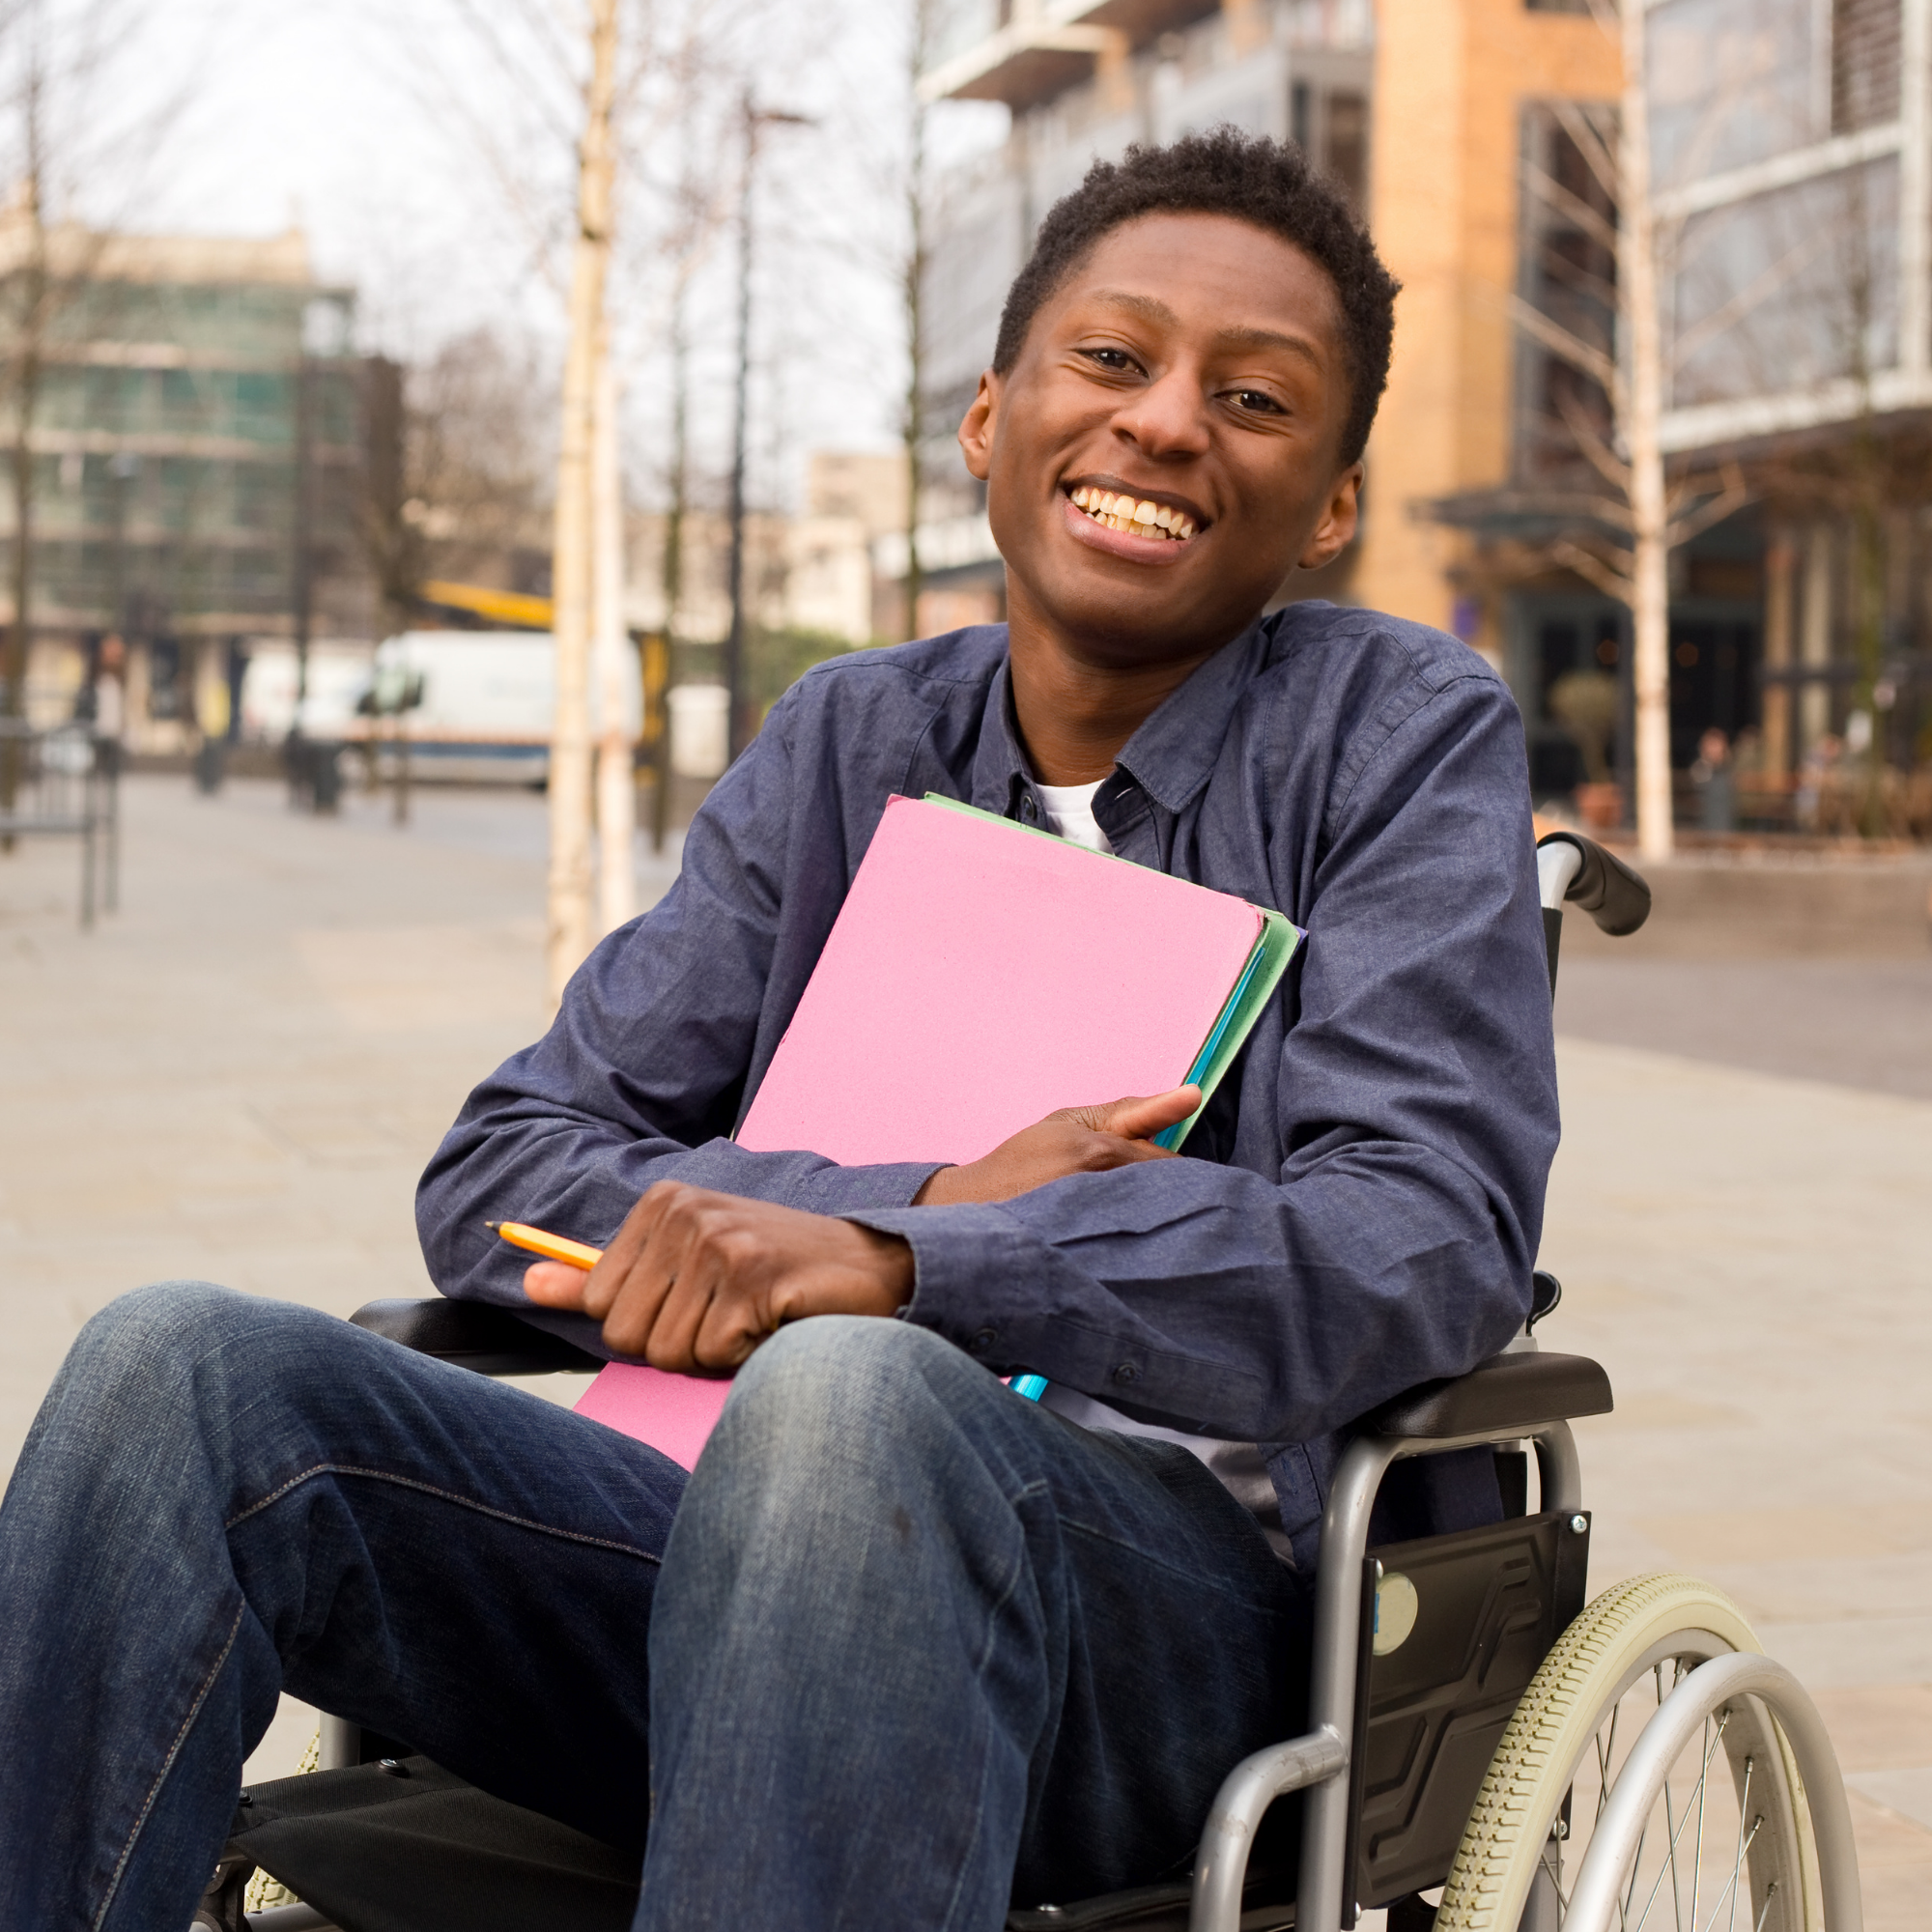 Young man in wheelchair holding school books